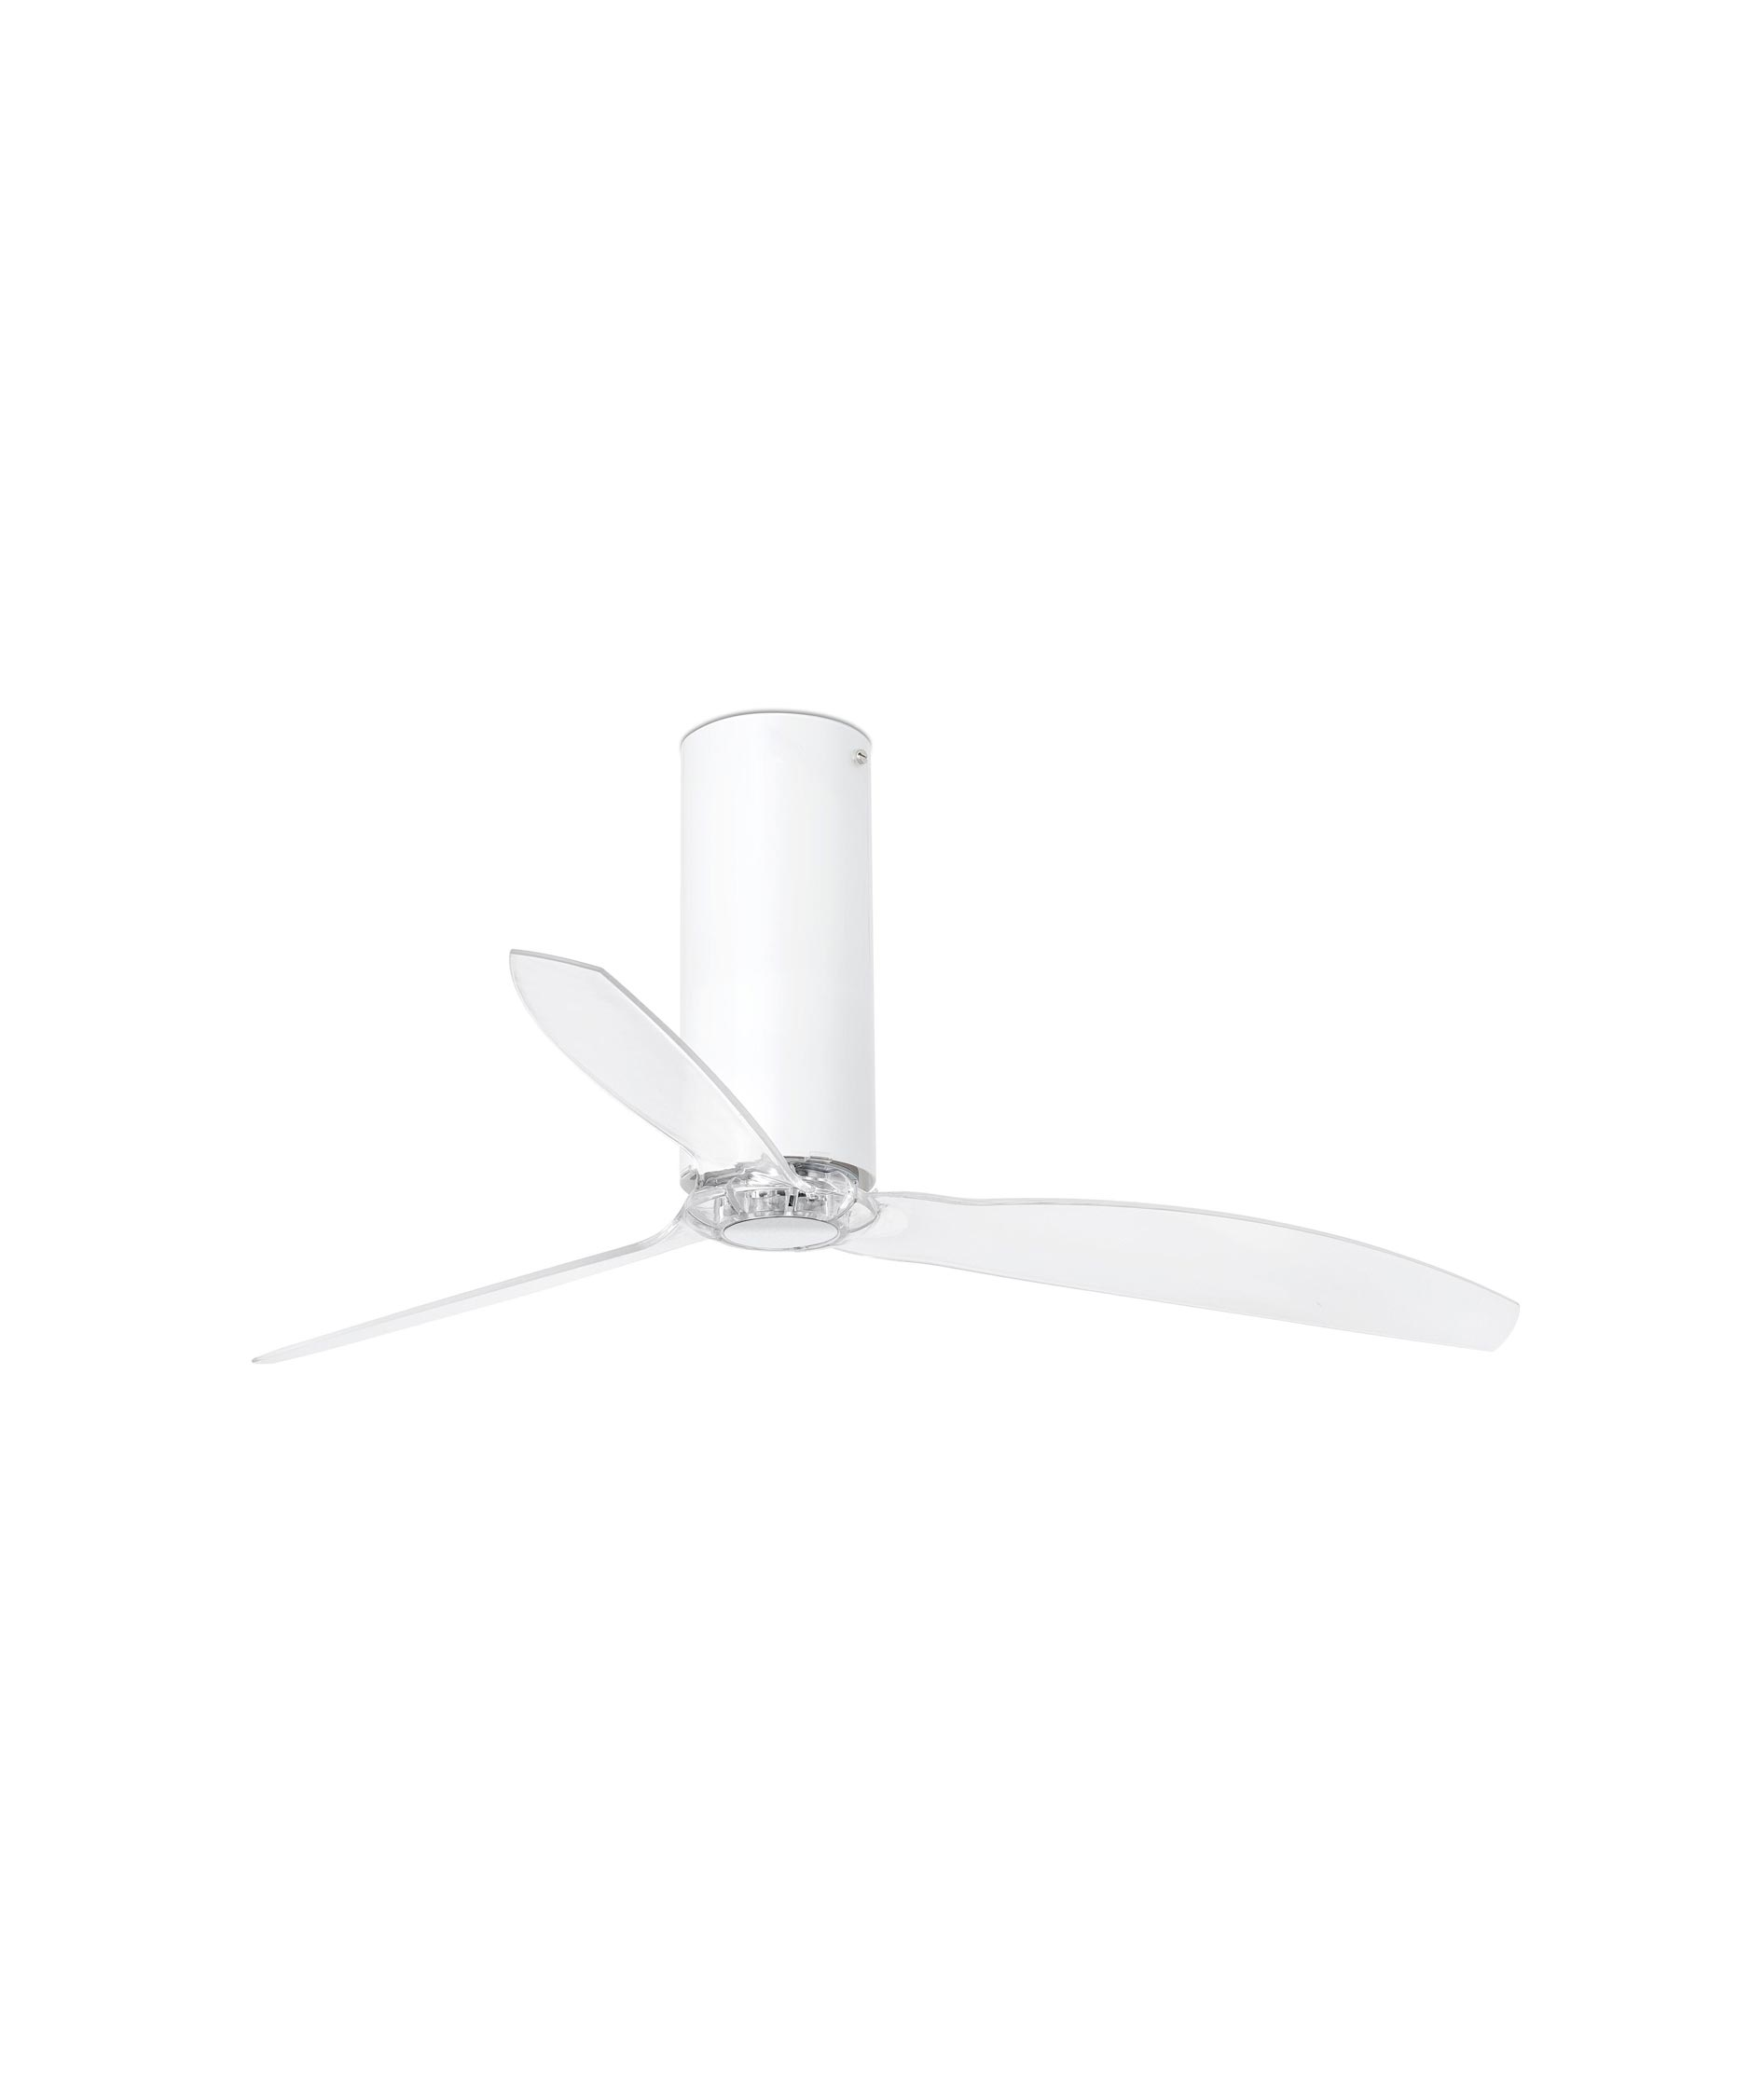 Ventilador blanco mate TUBE FAN